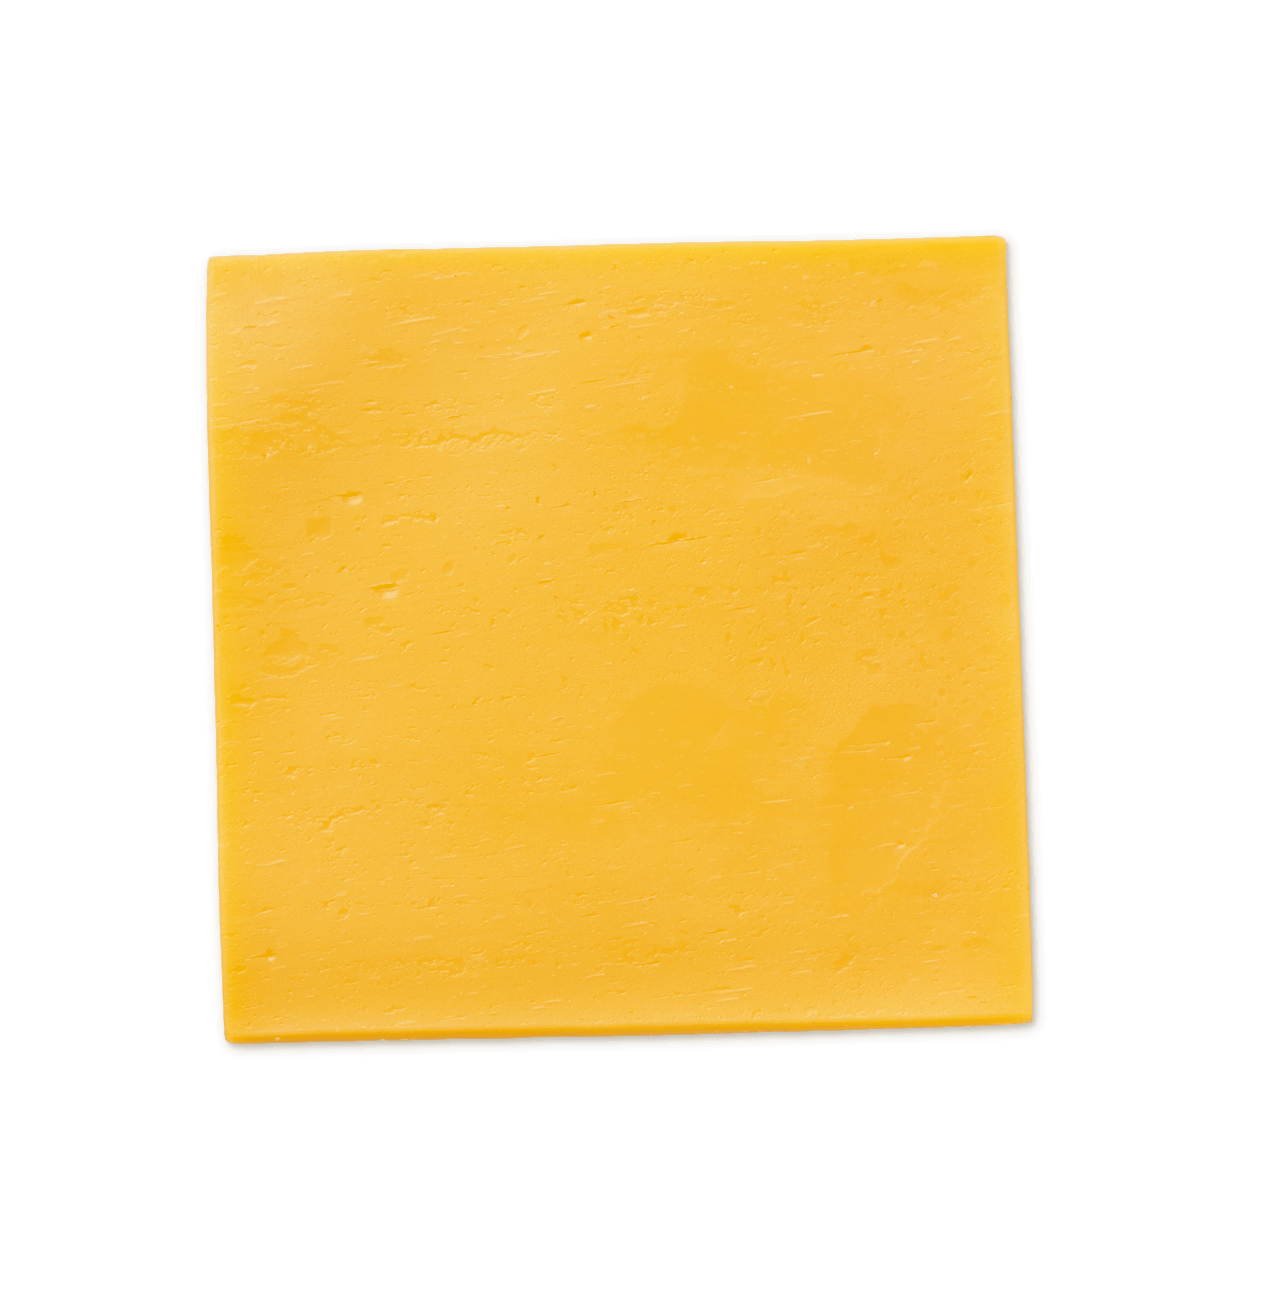 Slice Of Cheese Transparent & PNG Clipar #2681908 - PNG ... (1285 x 1306 Pixel)